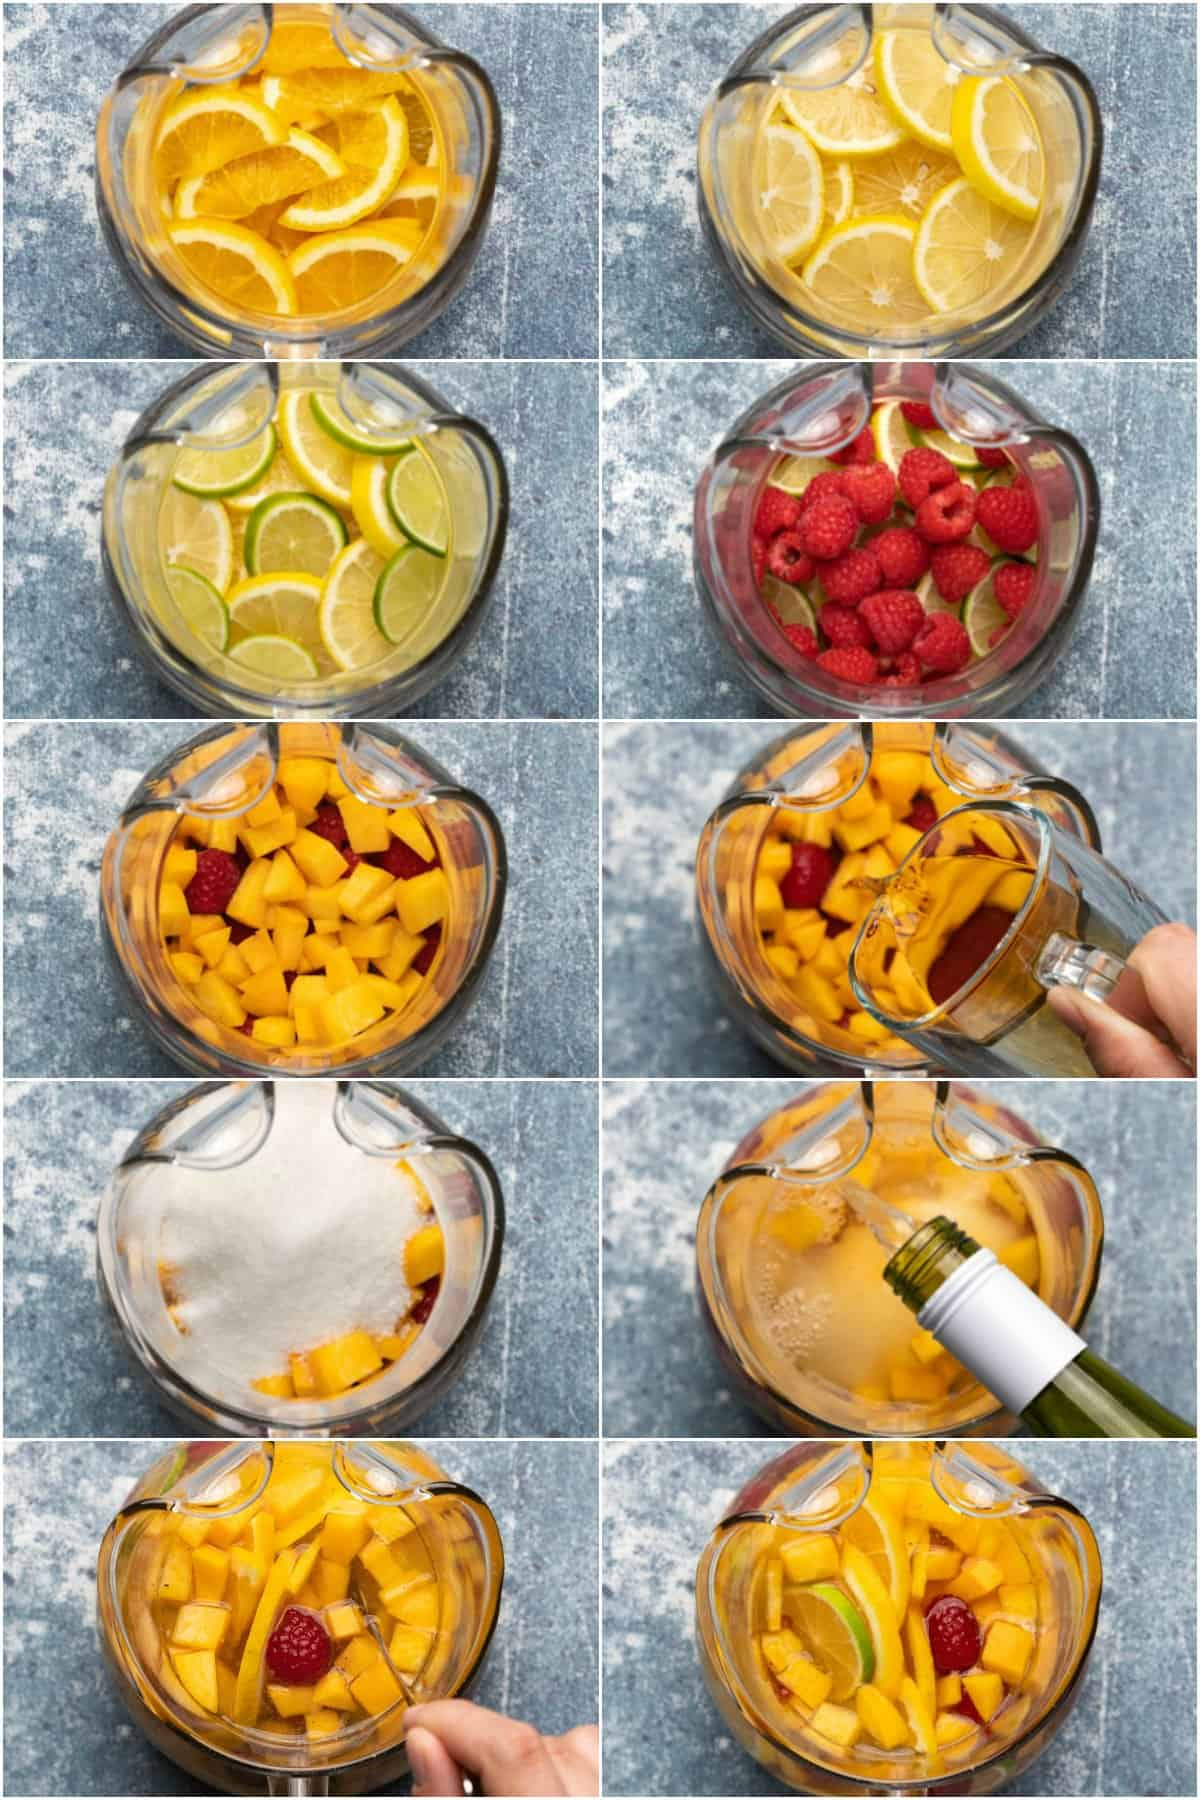 Step by step process photo collage of making white sangria.